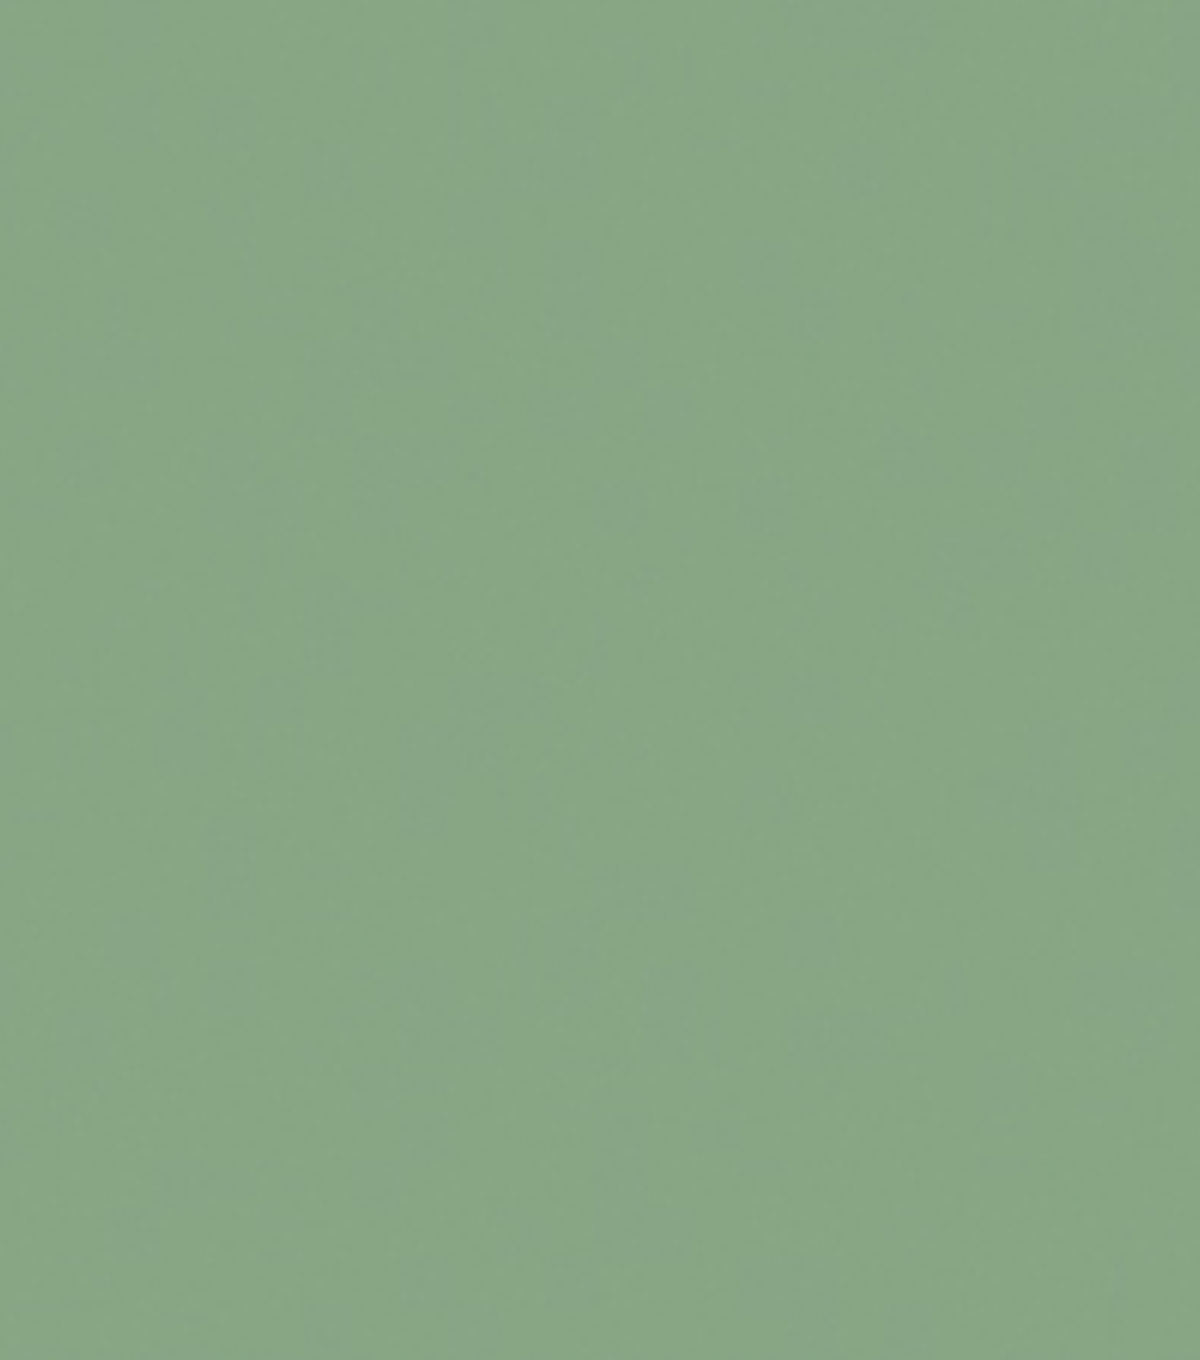 Delta Ceramcoat Acrylic Paint 2 oz, Wedgewood Green